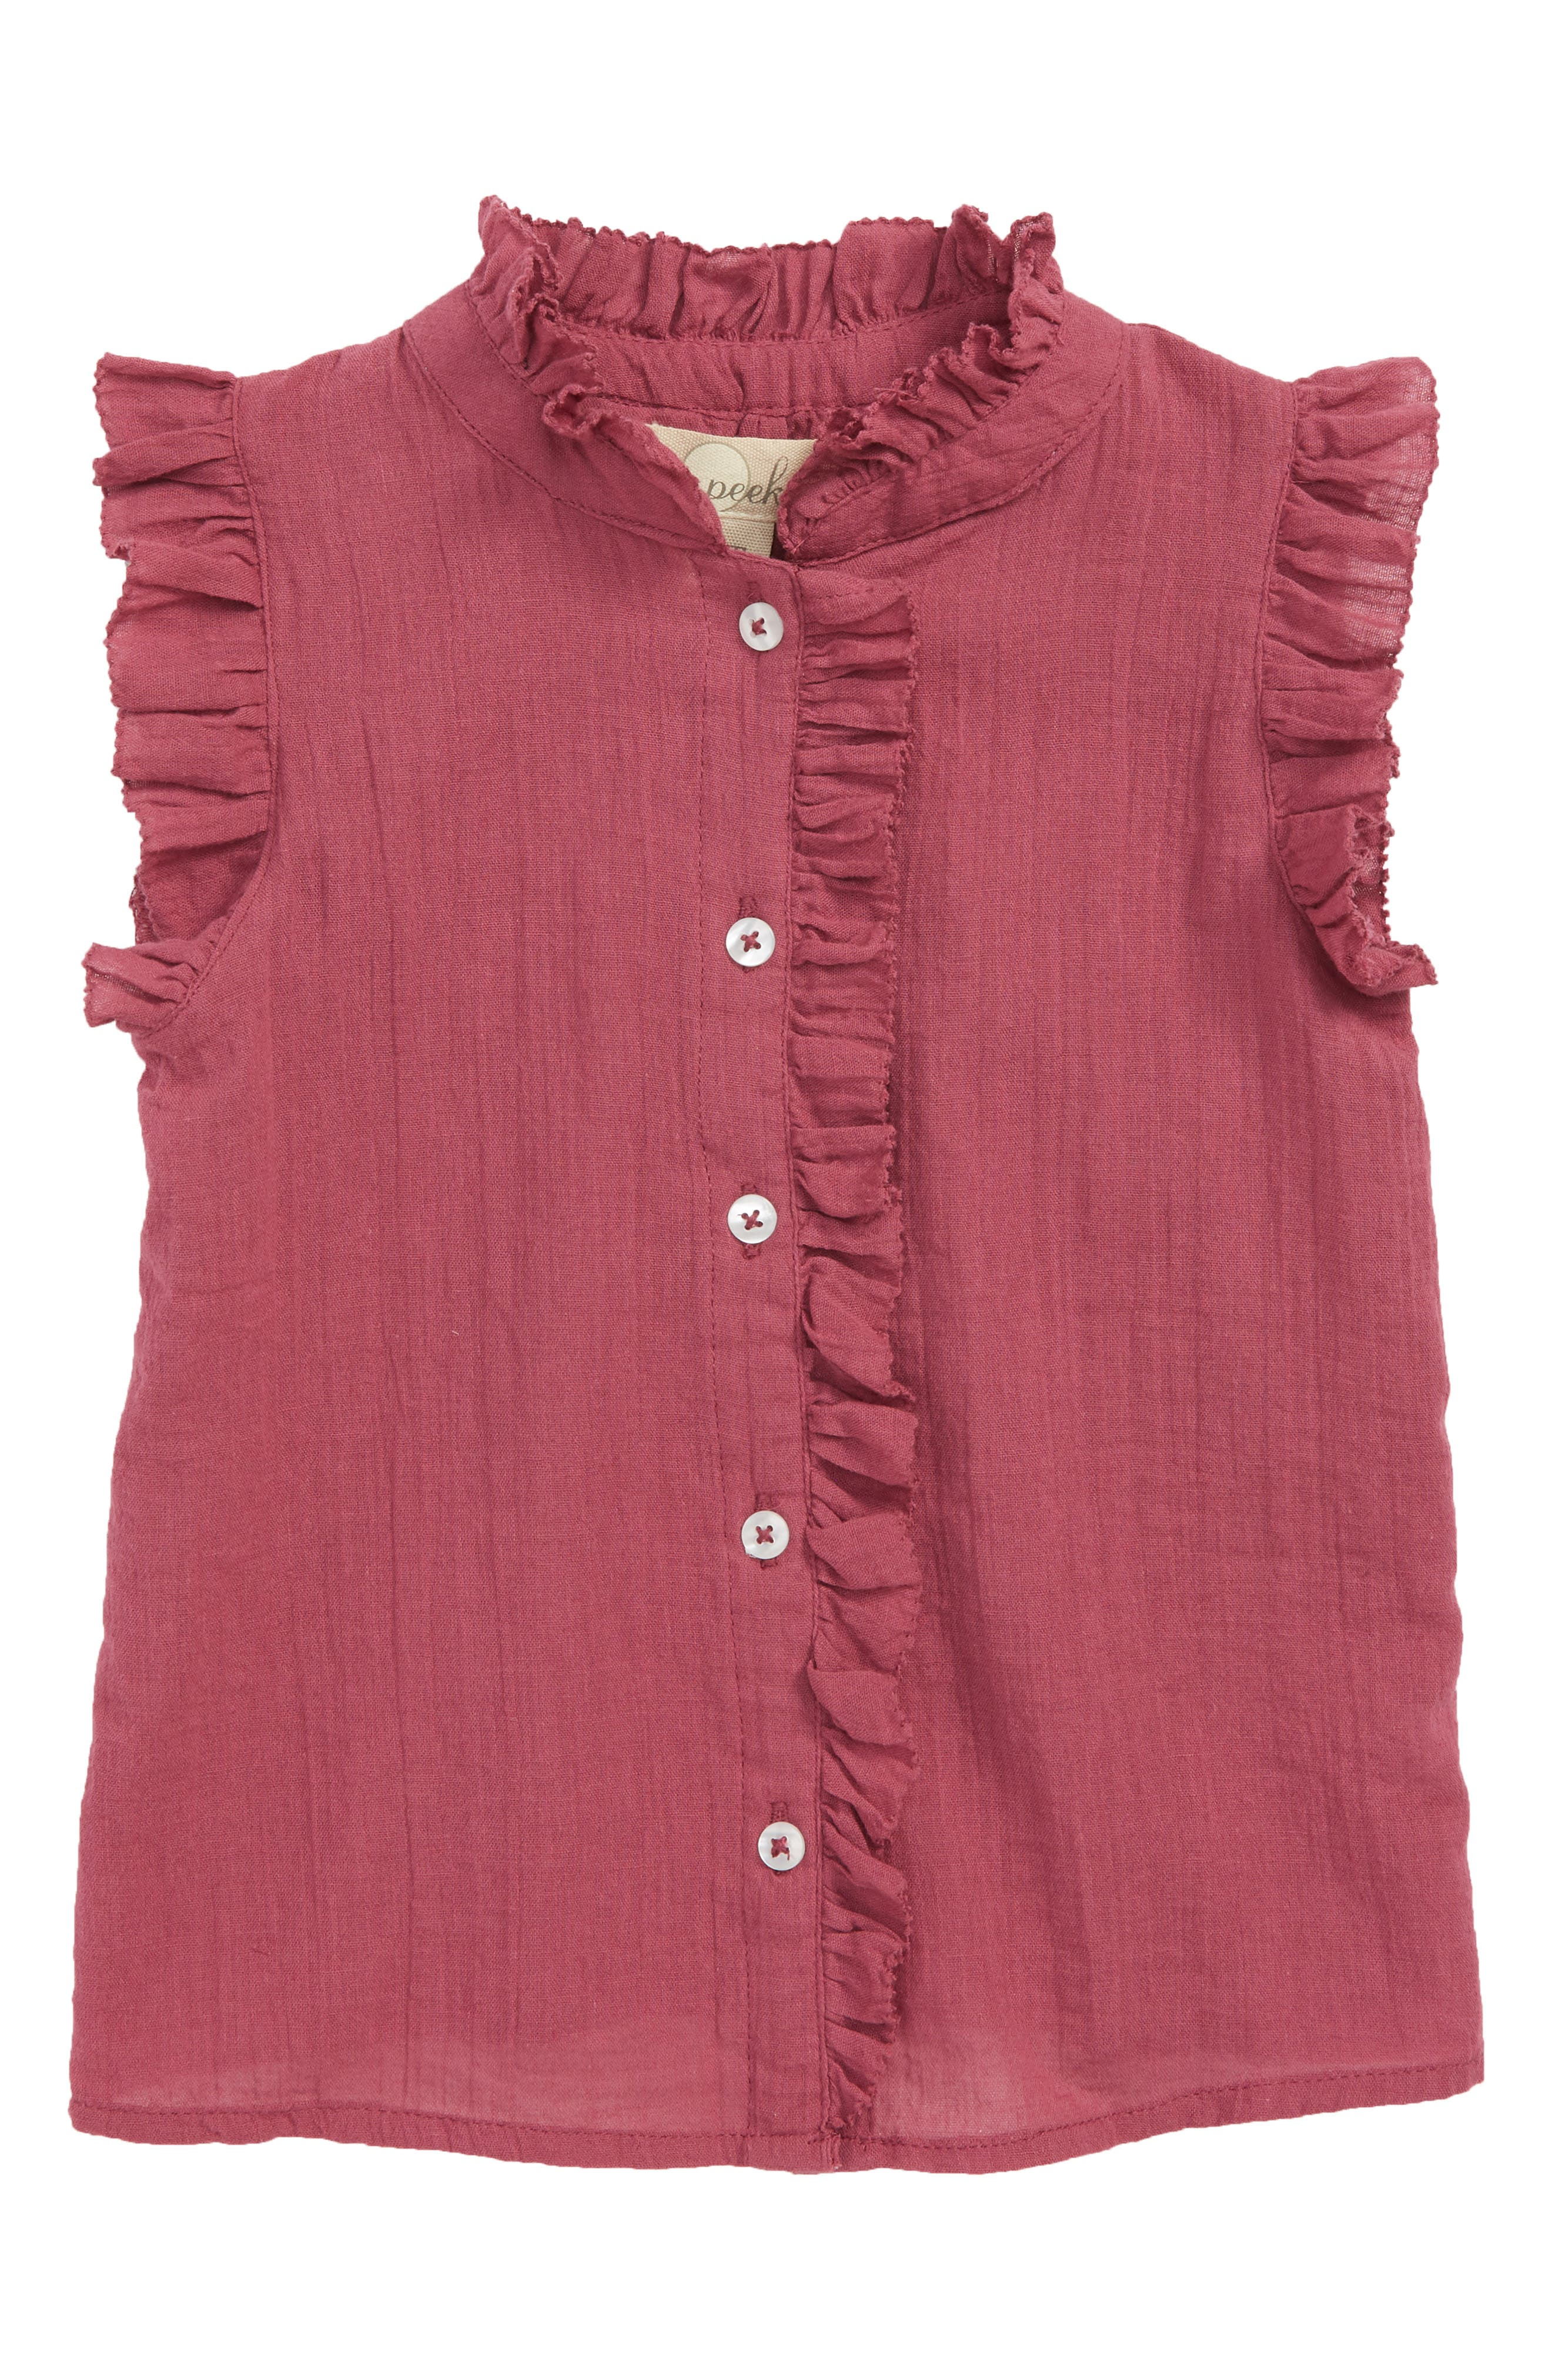 Kelsey Ruffle Top,                             Main thumbnail 1, color,                             930